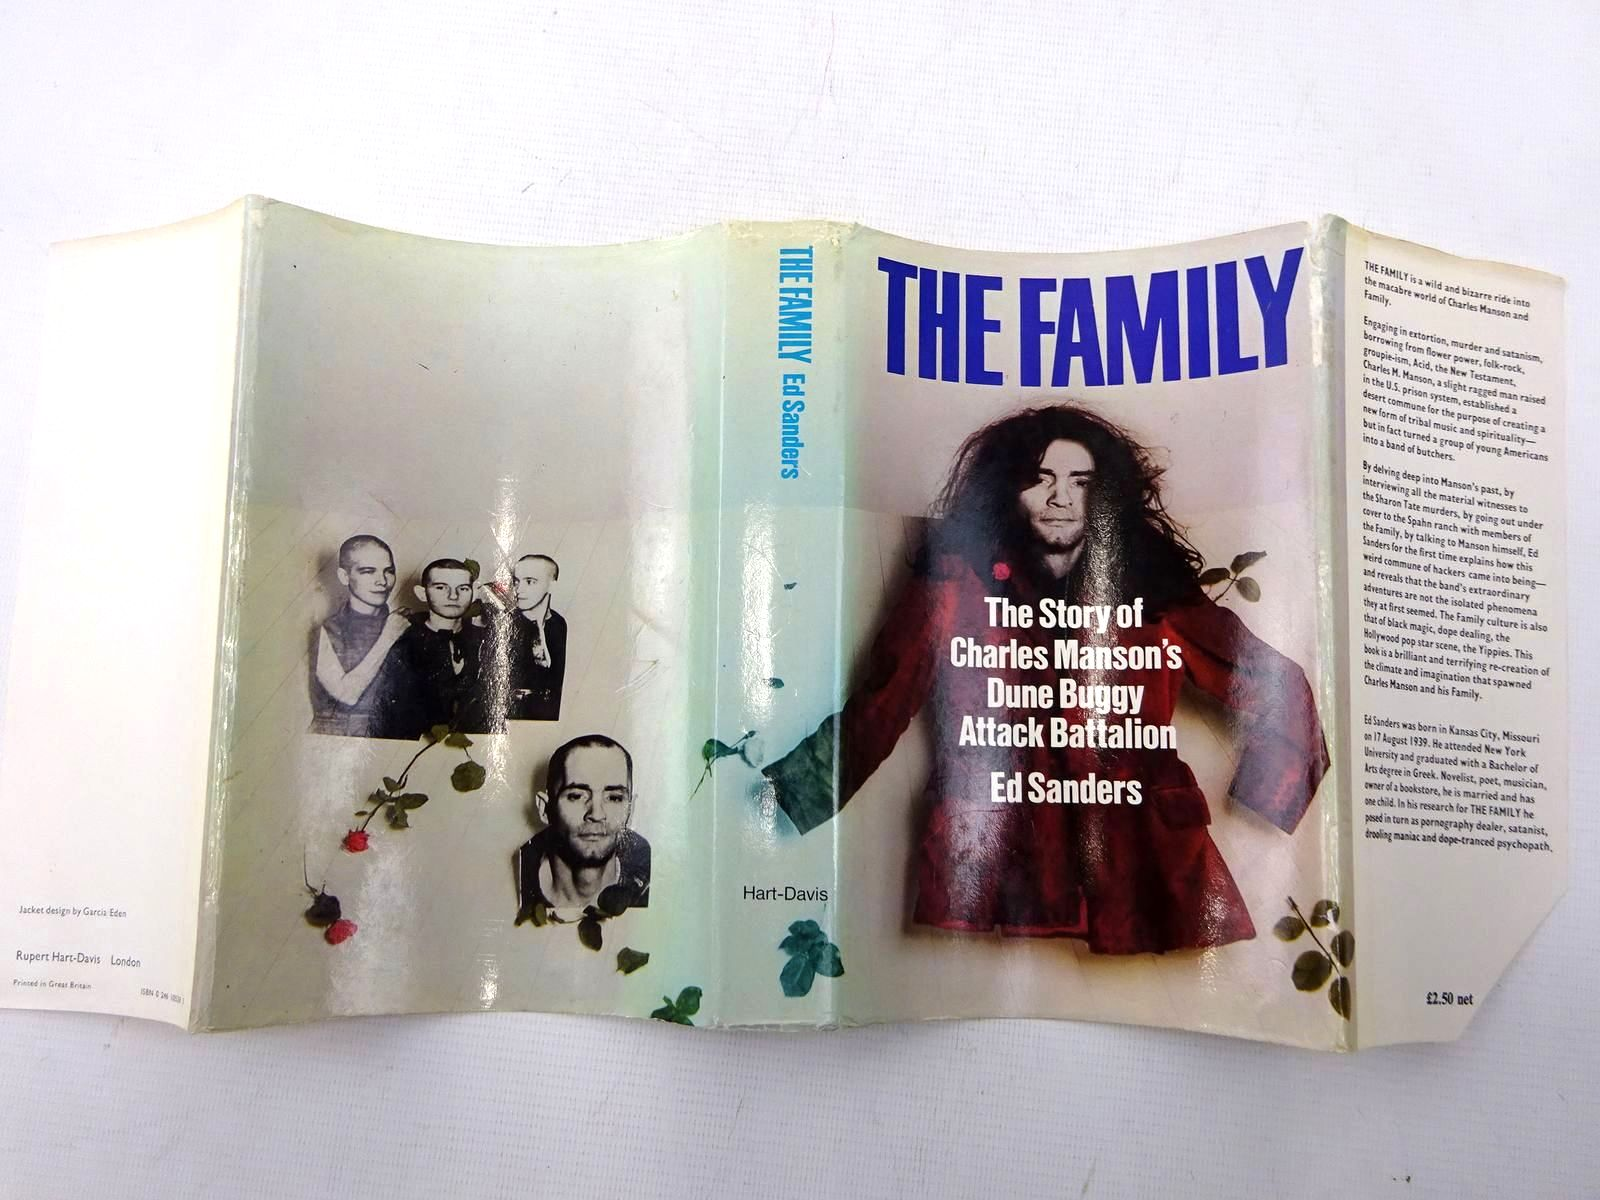 Photo of THE FAMILY THE STORY OF CHARLES MANSON'S DUNE BUGGY ATTACK BATTALION written by Sanders, Ed. published by Rupert Hart-Davis (STOCK CODE: 2128893)  for sale by Stella & Rose's Books